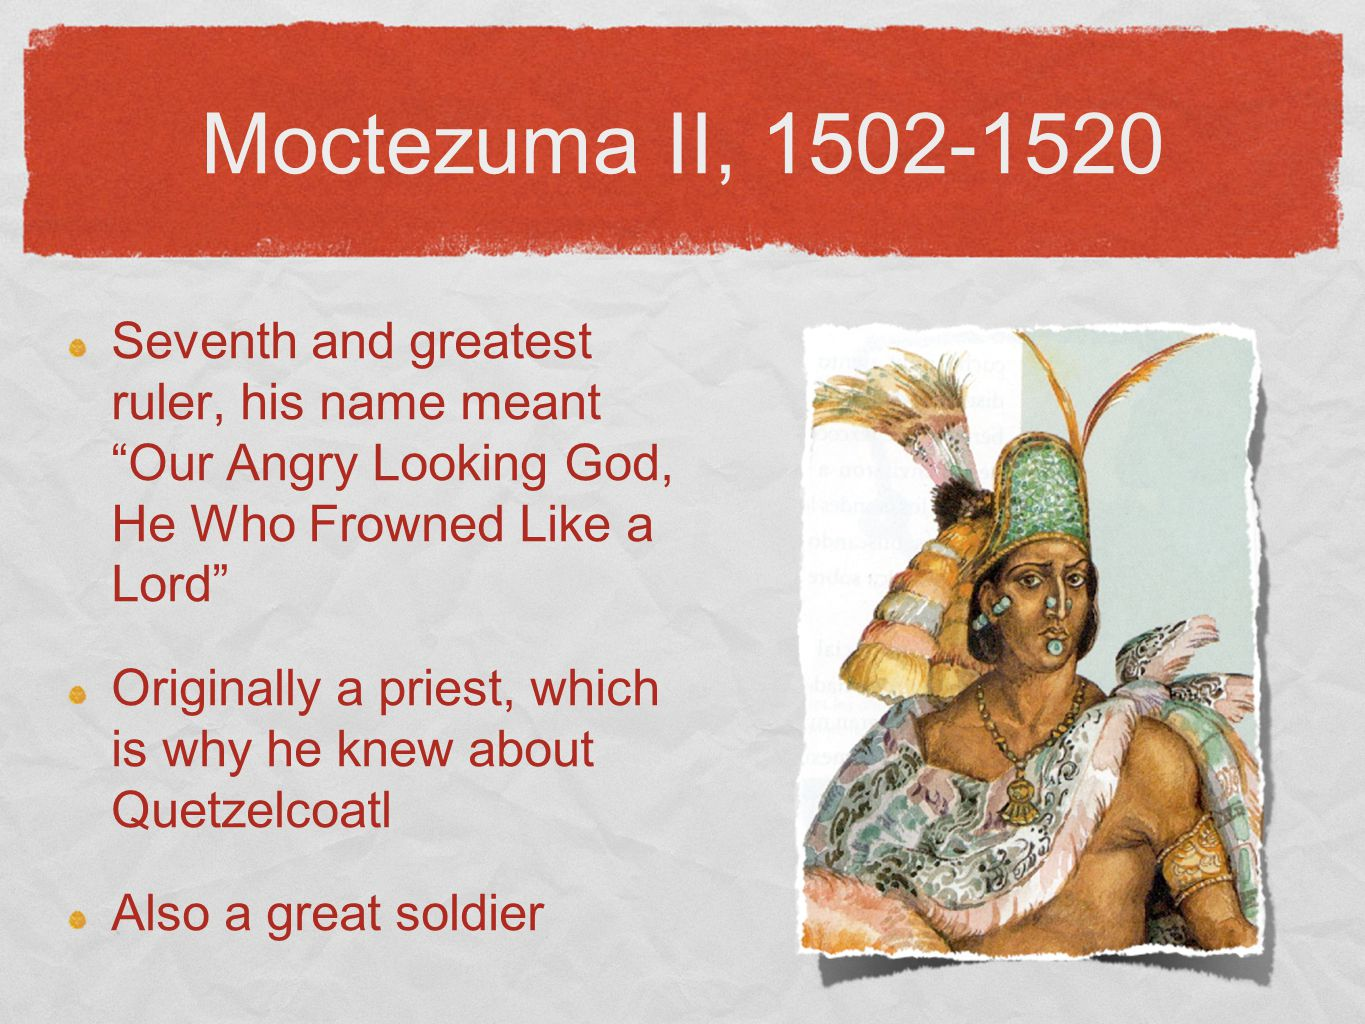 Moctezuma II, 1502-1520 Seventh and greatest ruler, his name meant Our Angry Looking God, He Who Frowned Like a Lord